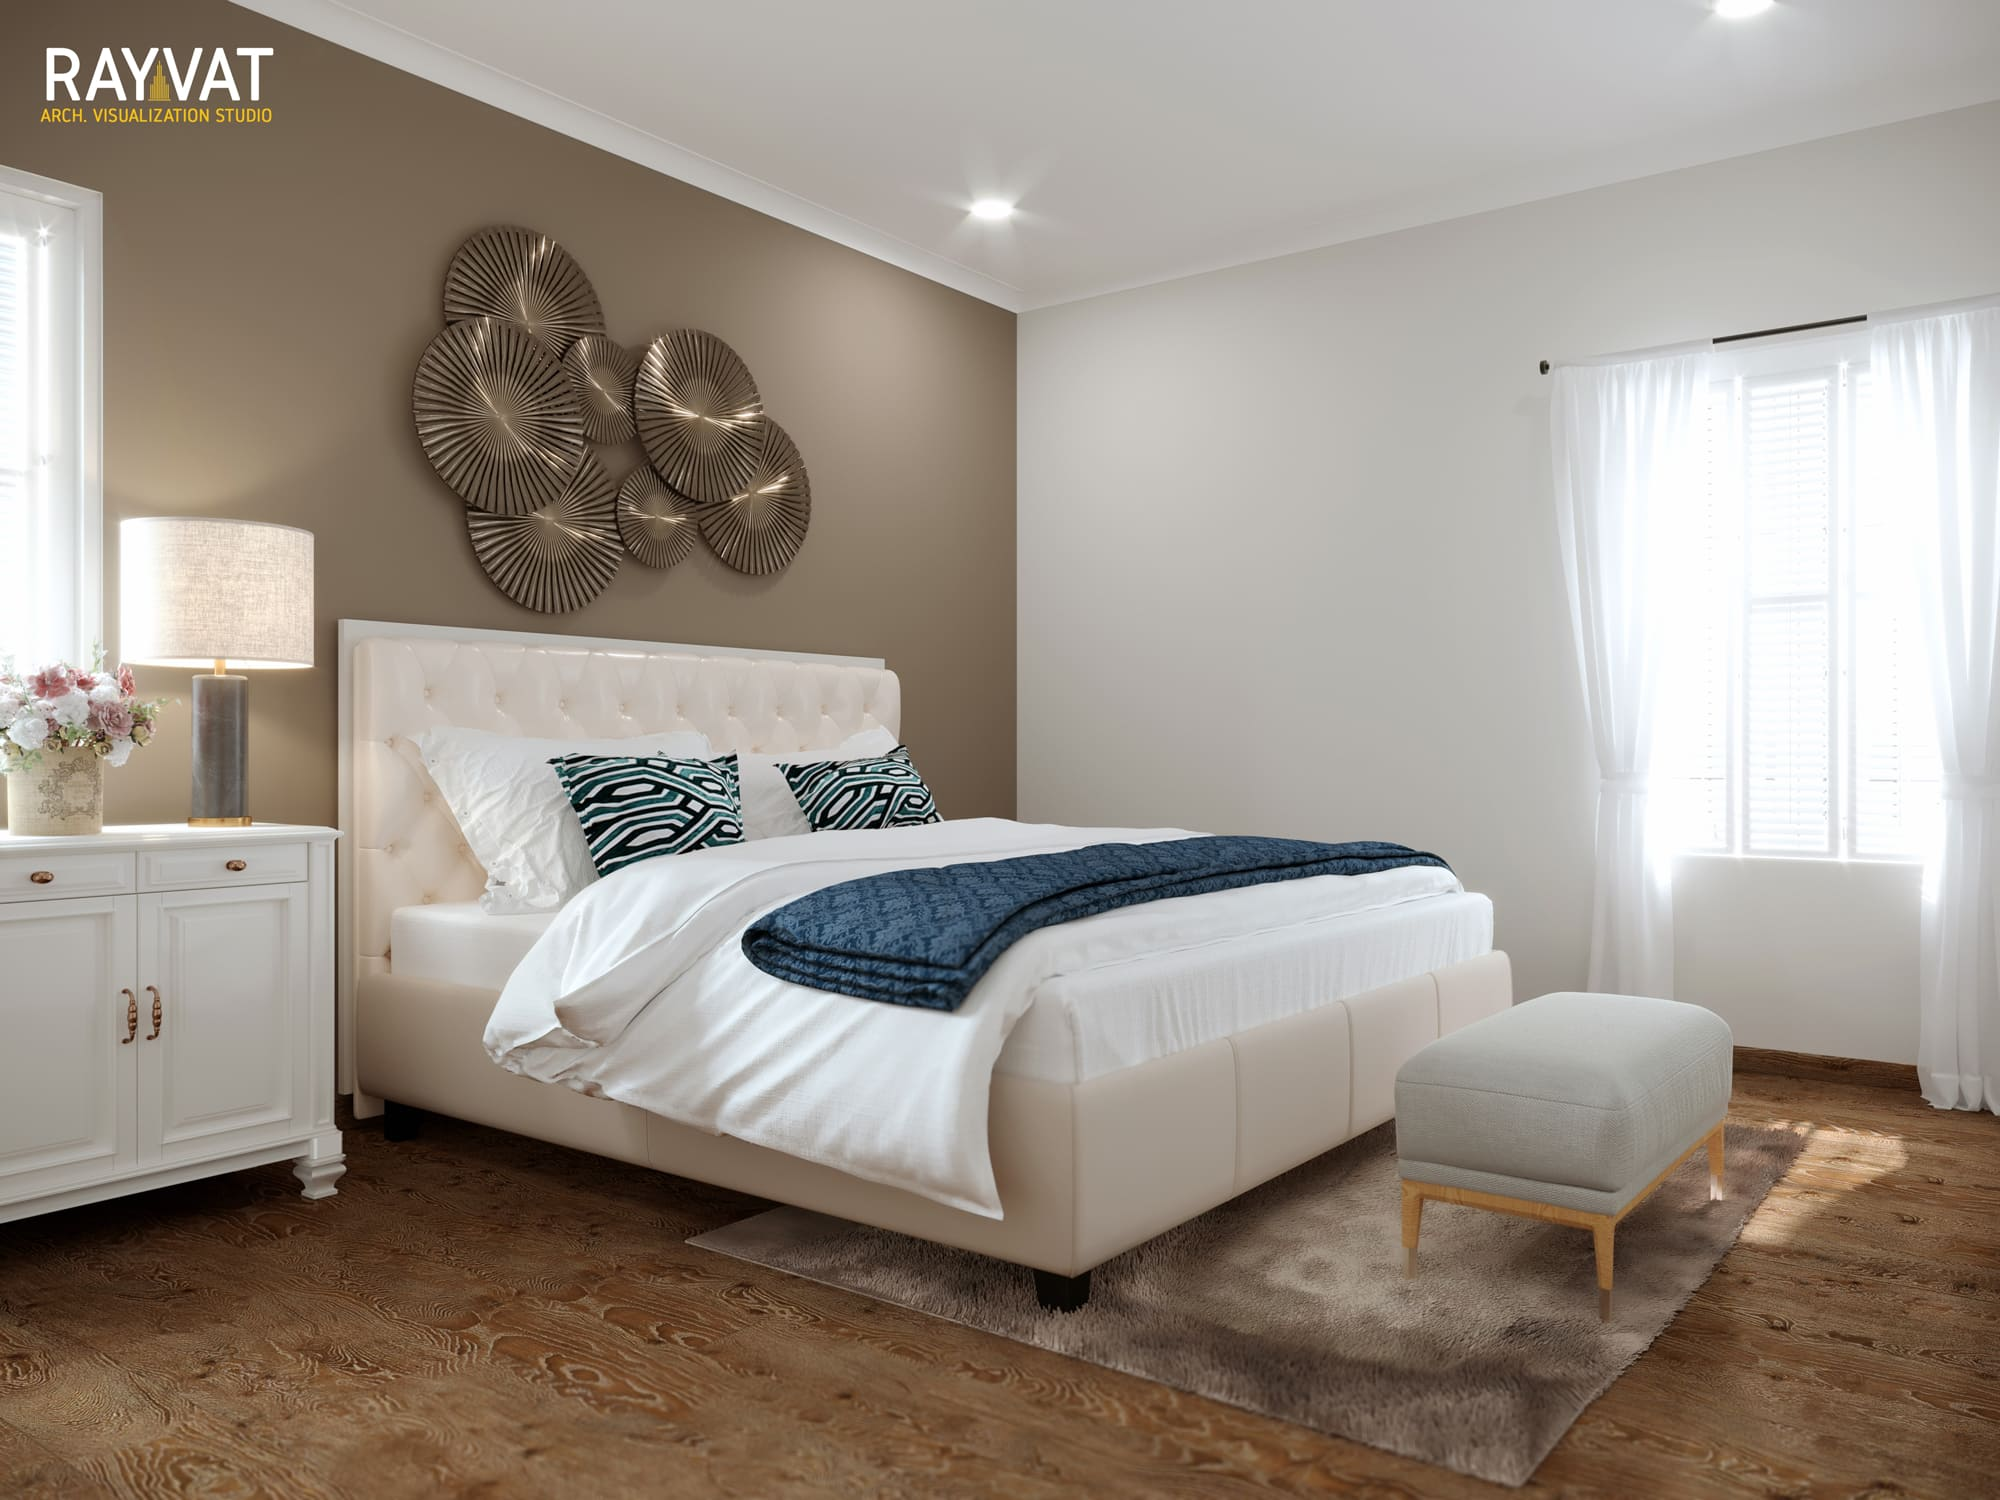 3D Rendering Services Pasadena, California